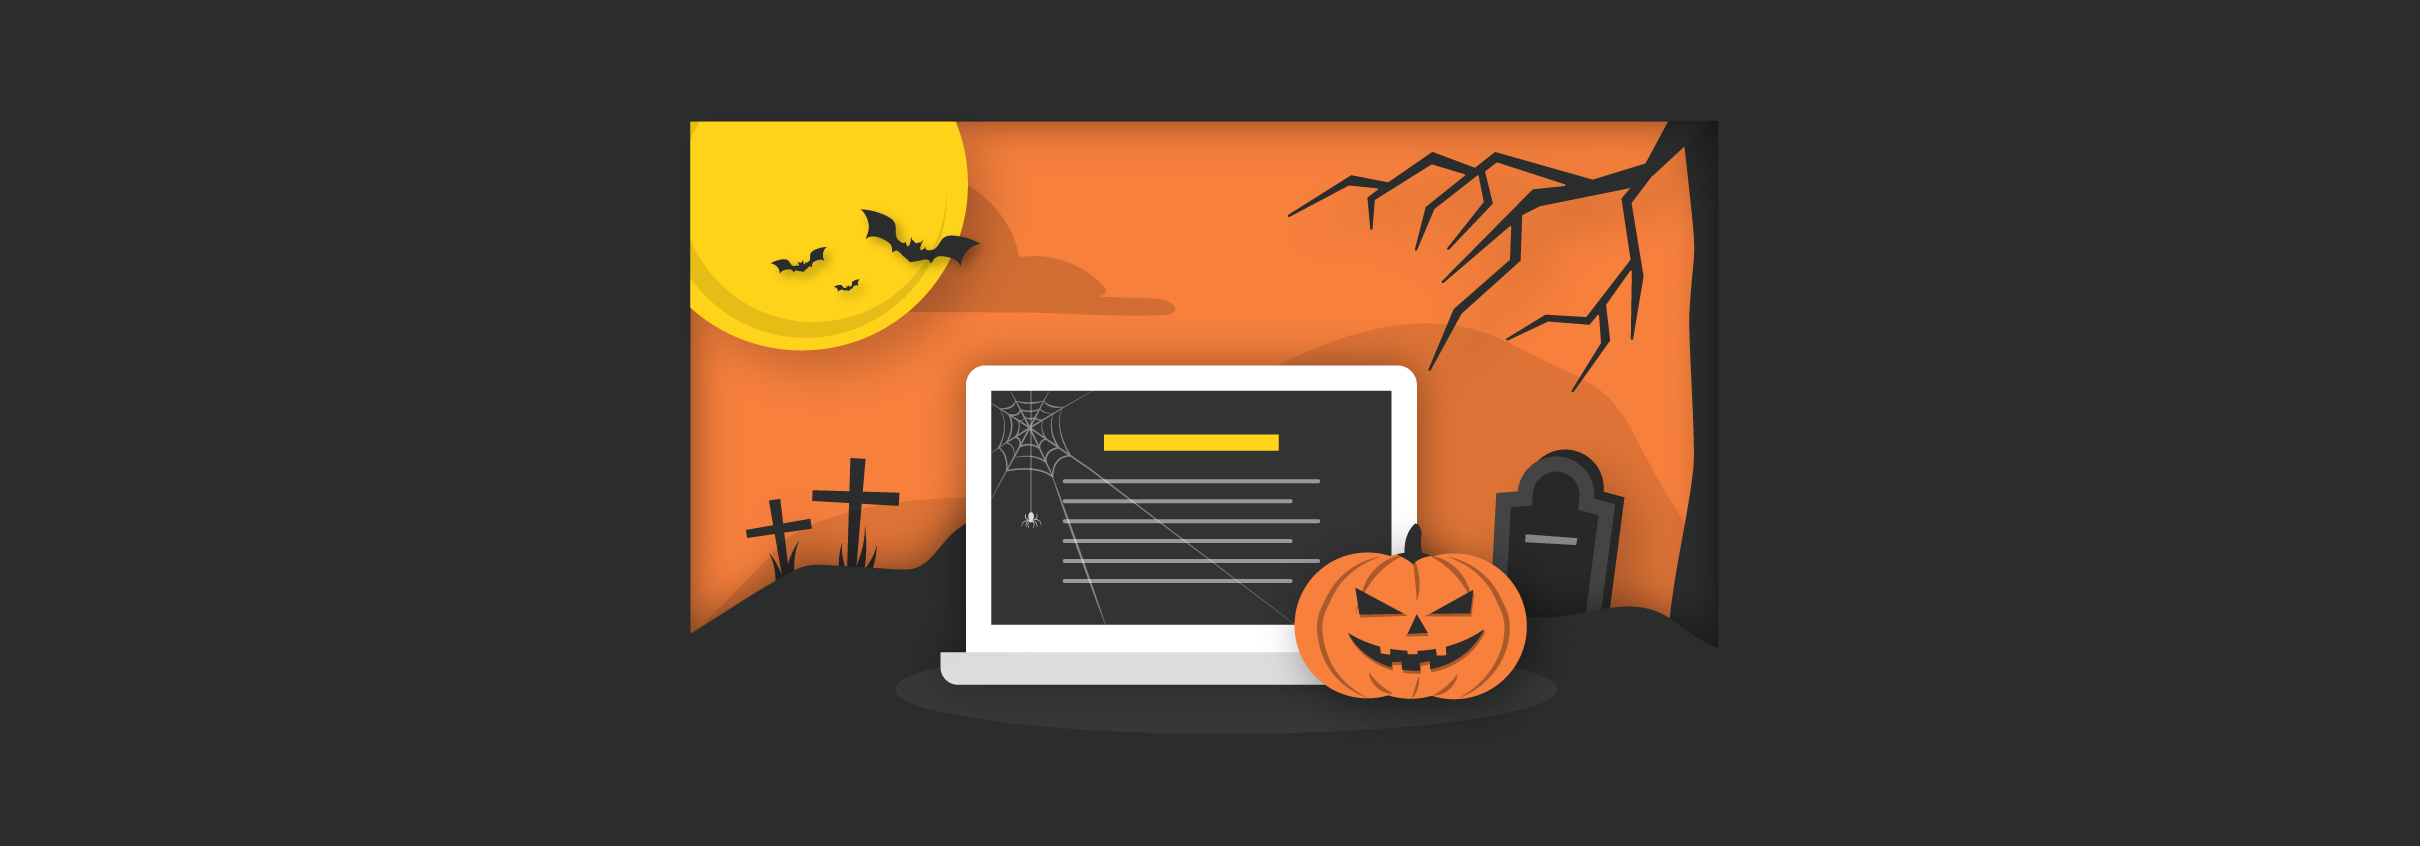 If You've Got It, Haunt It: 13 Spooky Ideas for Your Halloween Marketing Campaigns & Content